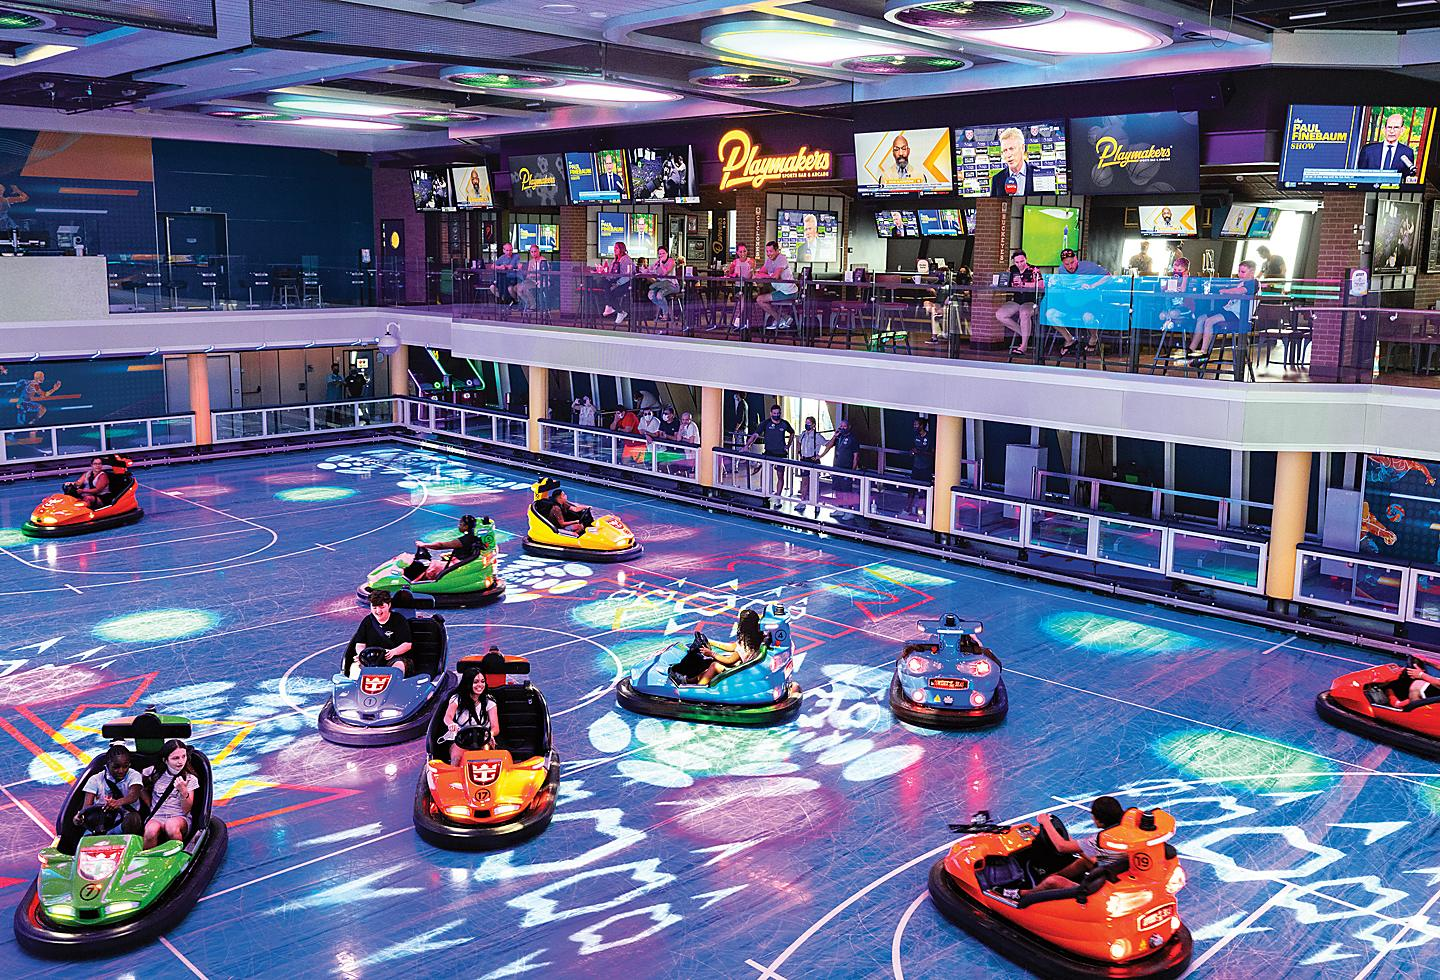 Seaplex with bumper cars and Playmakers